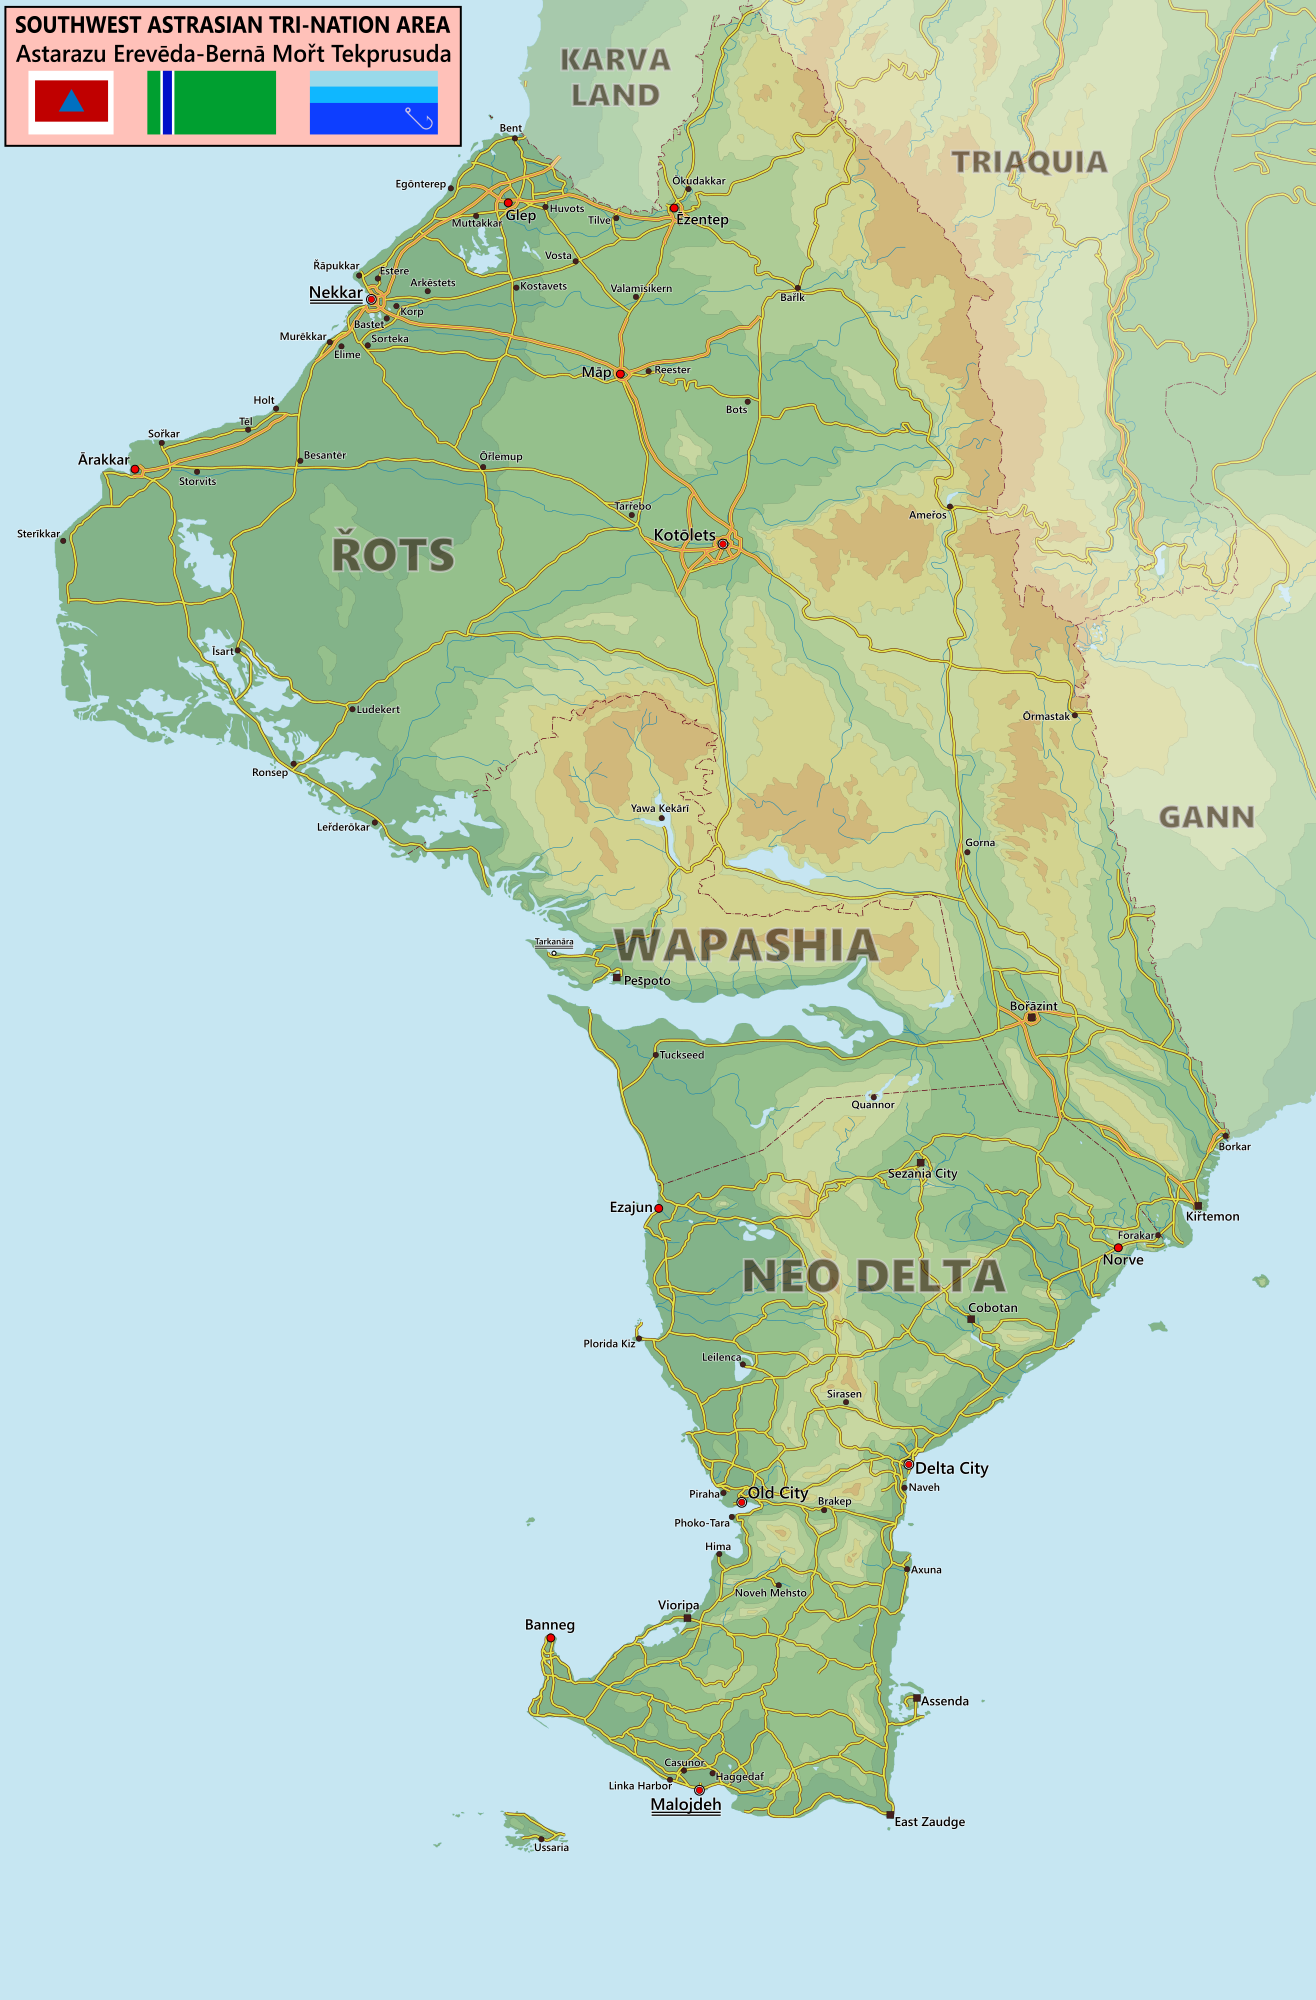 Map of the Southwest-Astrasian Tri-Nation Area